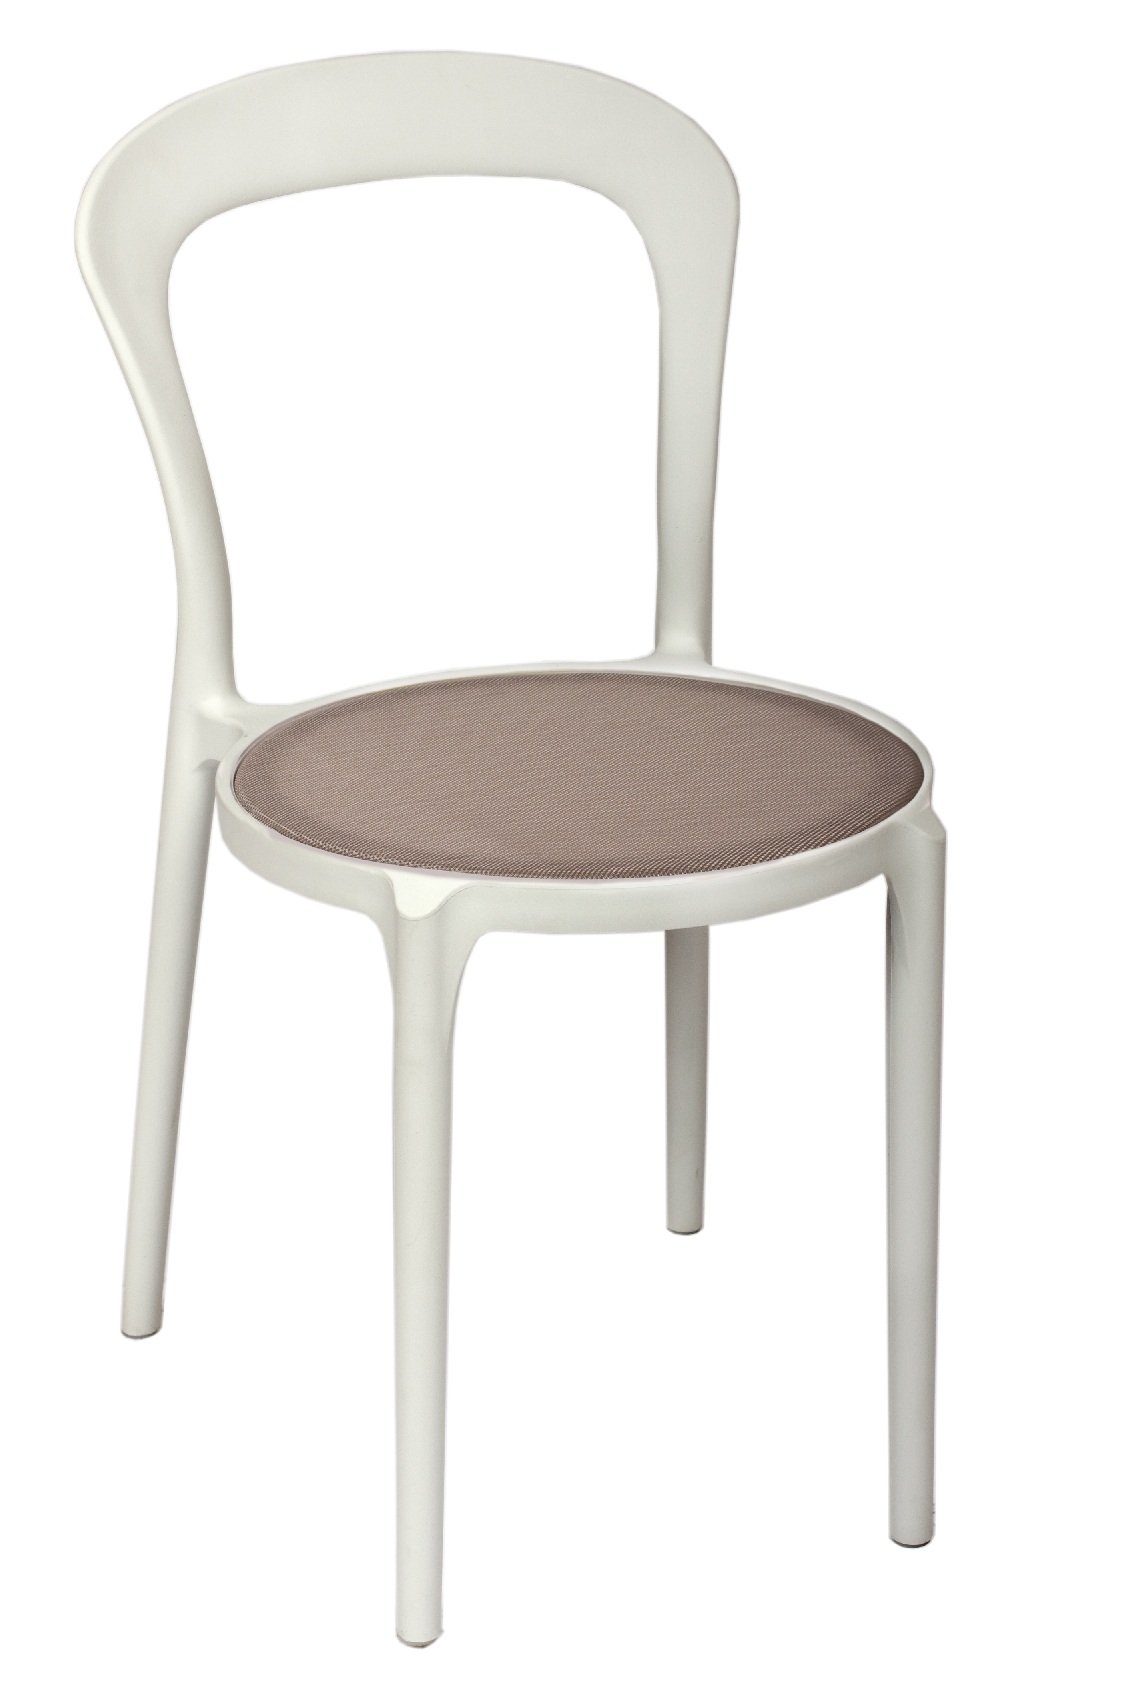 BFM Malibu Outdoor Restaurant Chair- White w/ Textilene Silver S